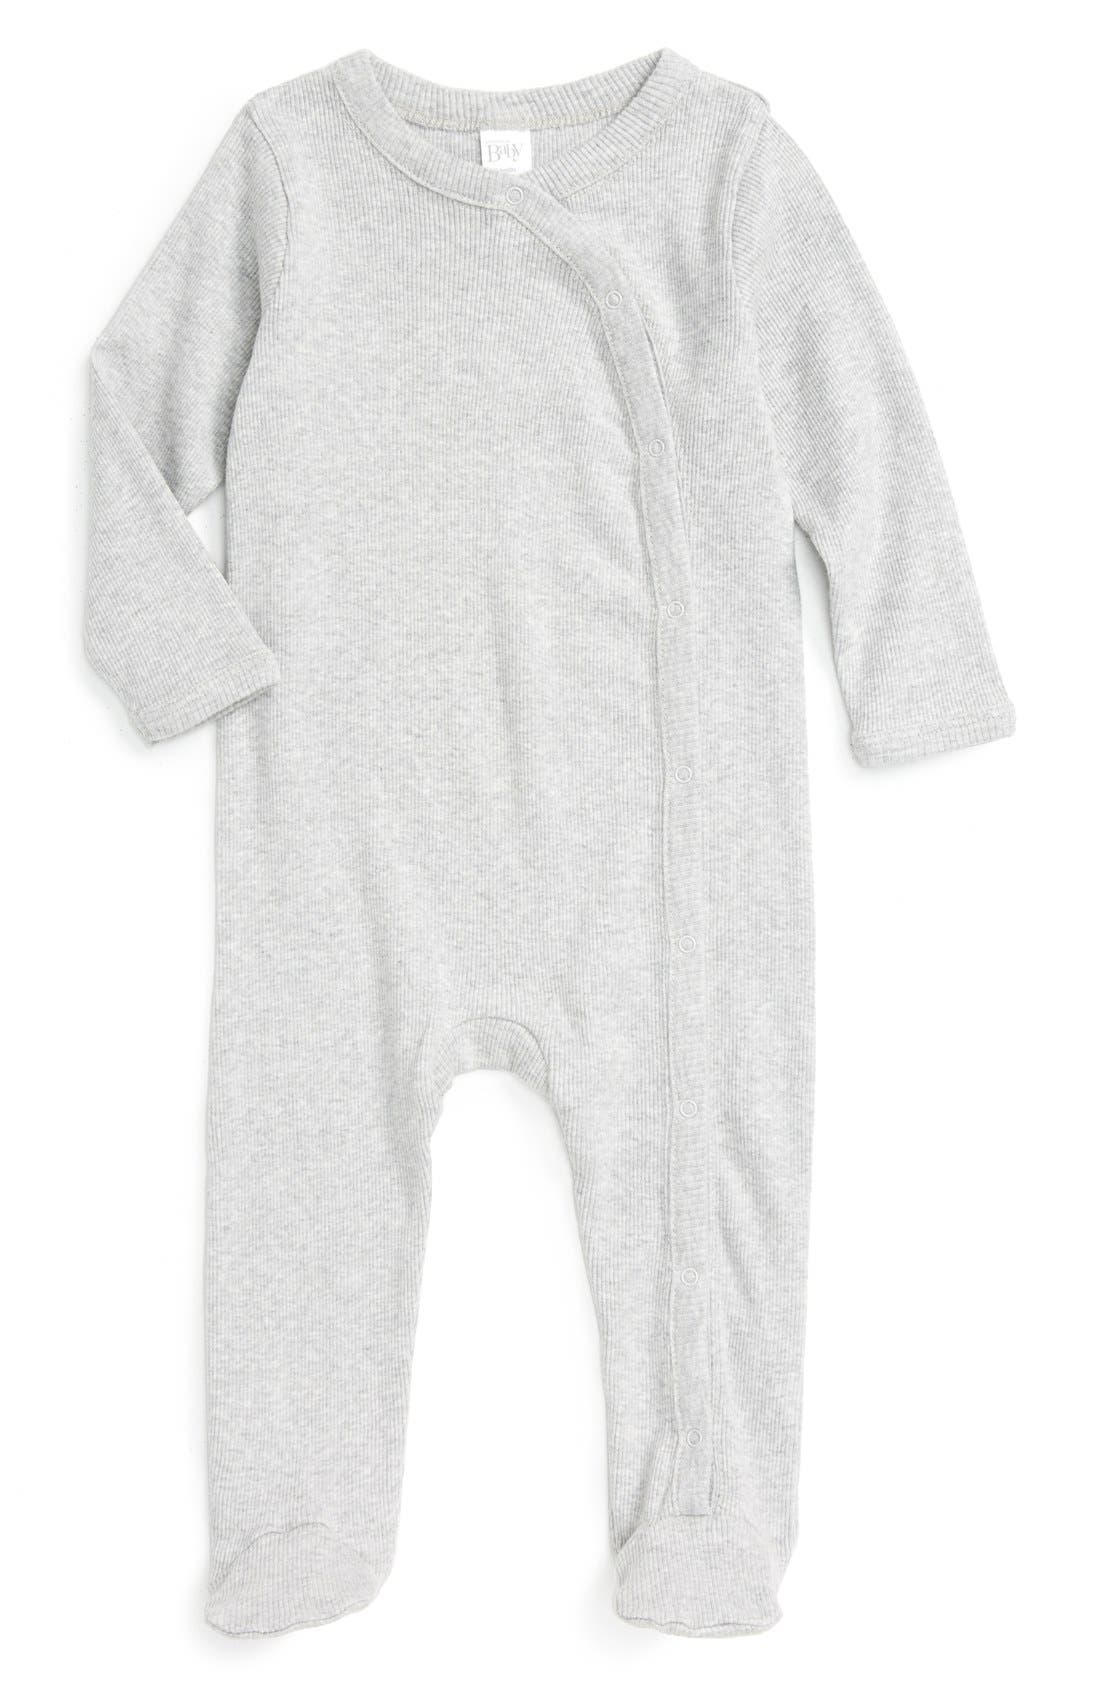 NORDSTROM BABY Rib Knit Footie